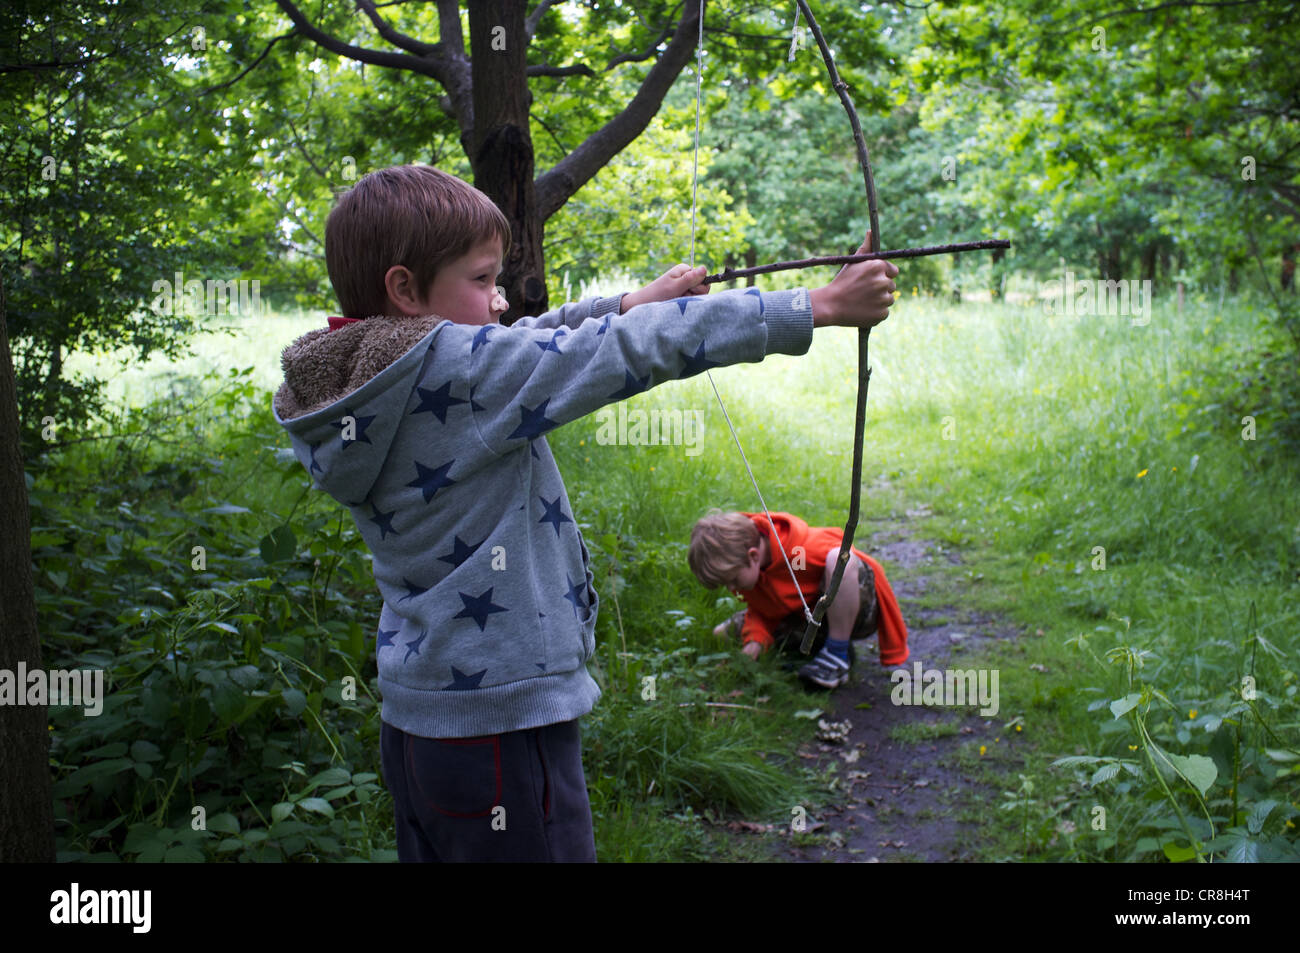 Two boys playing in woods in Sydenham, south east London including homemade bows and arrows.